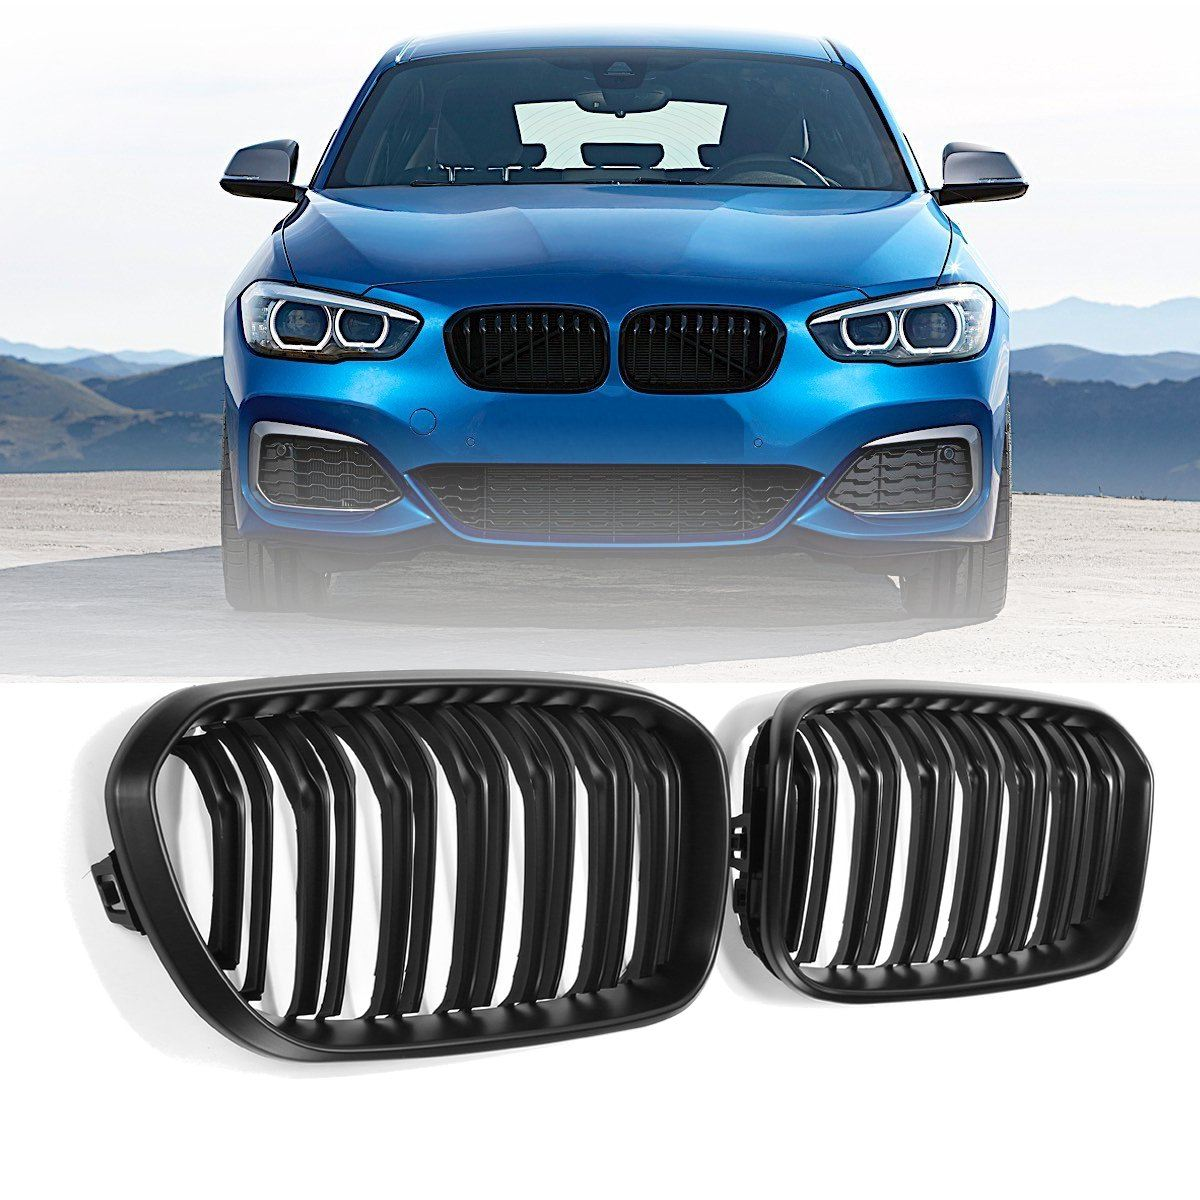 For BMW F20 F21 1 Series 2015 2016 2017 Pair Gloss Matt Black Double Slat Line M Color Front Racing Grill Kidney Grill Grille car bight glossy black double slat front grille grill for bmw e92 lci facelift e93 2011 2012 2013 c 5